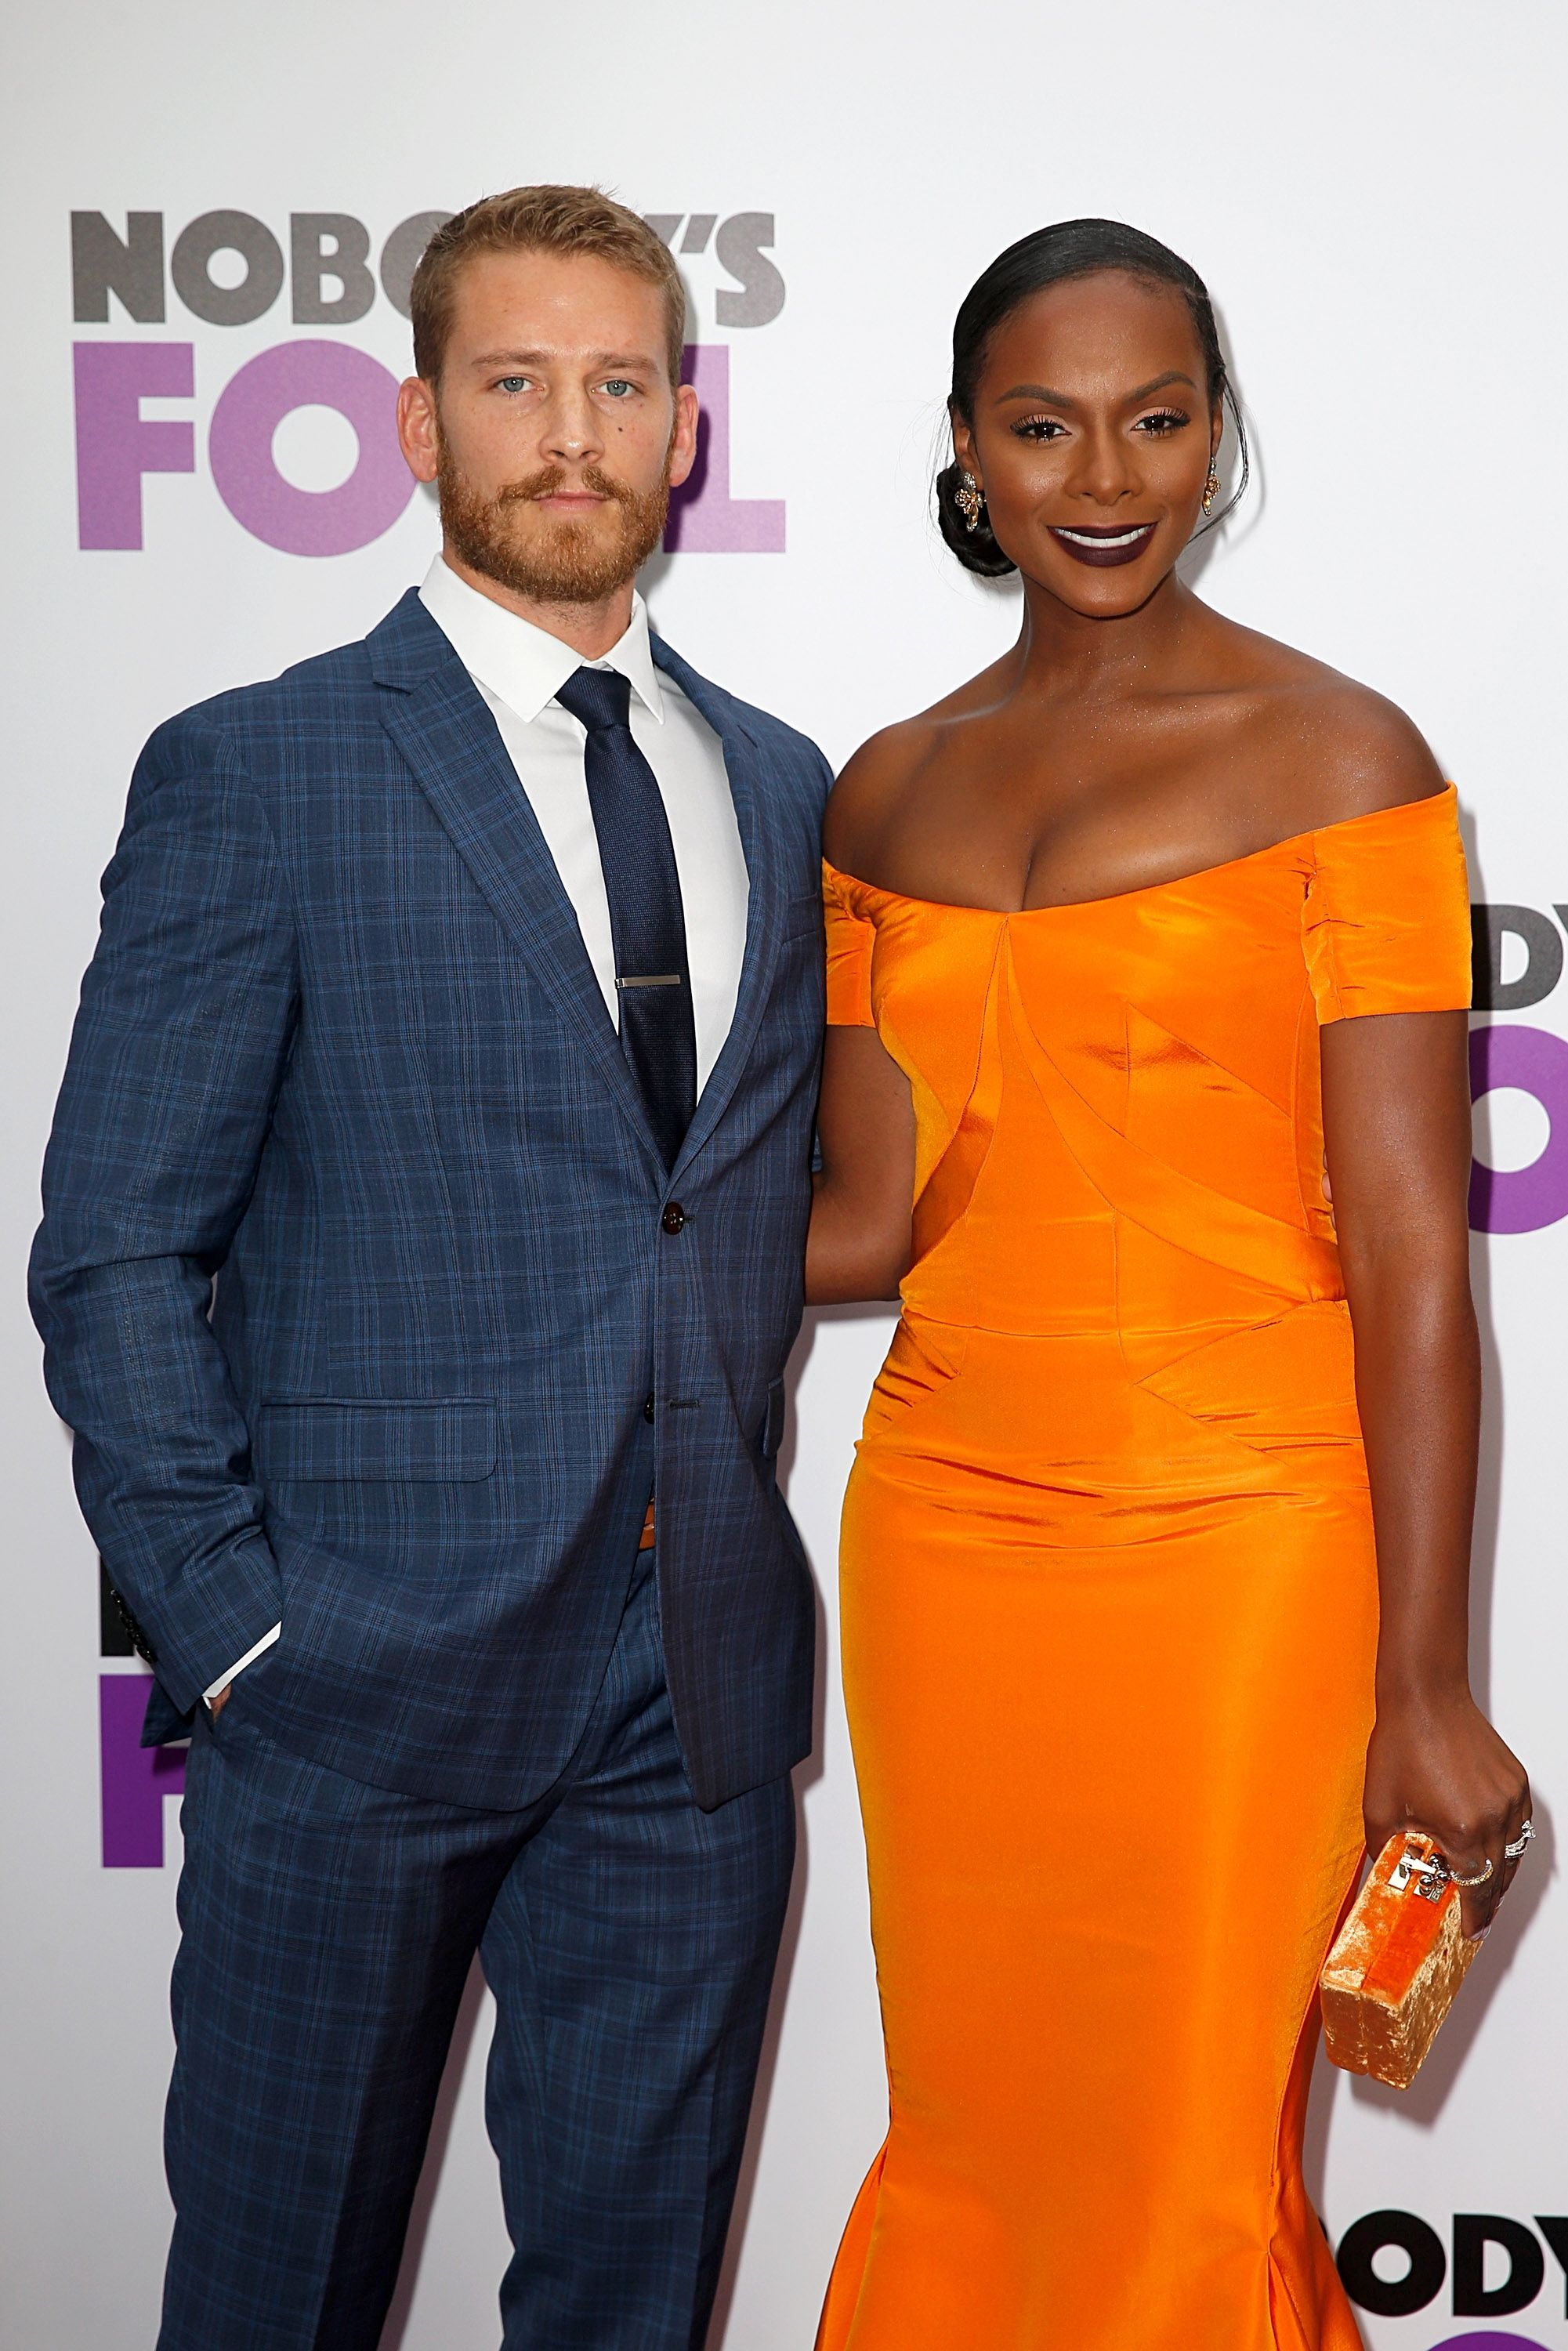 Nicholas James and Tika Sumpter at the 'Nobody's Fool' New York premiere at AMC Lincoln Square Theater on October 28, 2018 | Photo: Getty Images